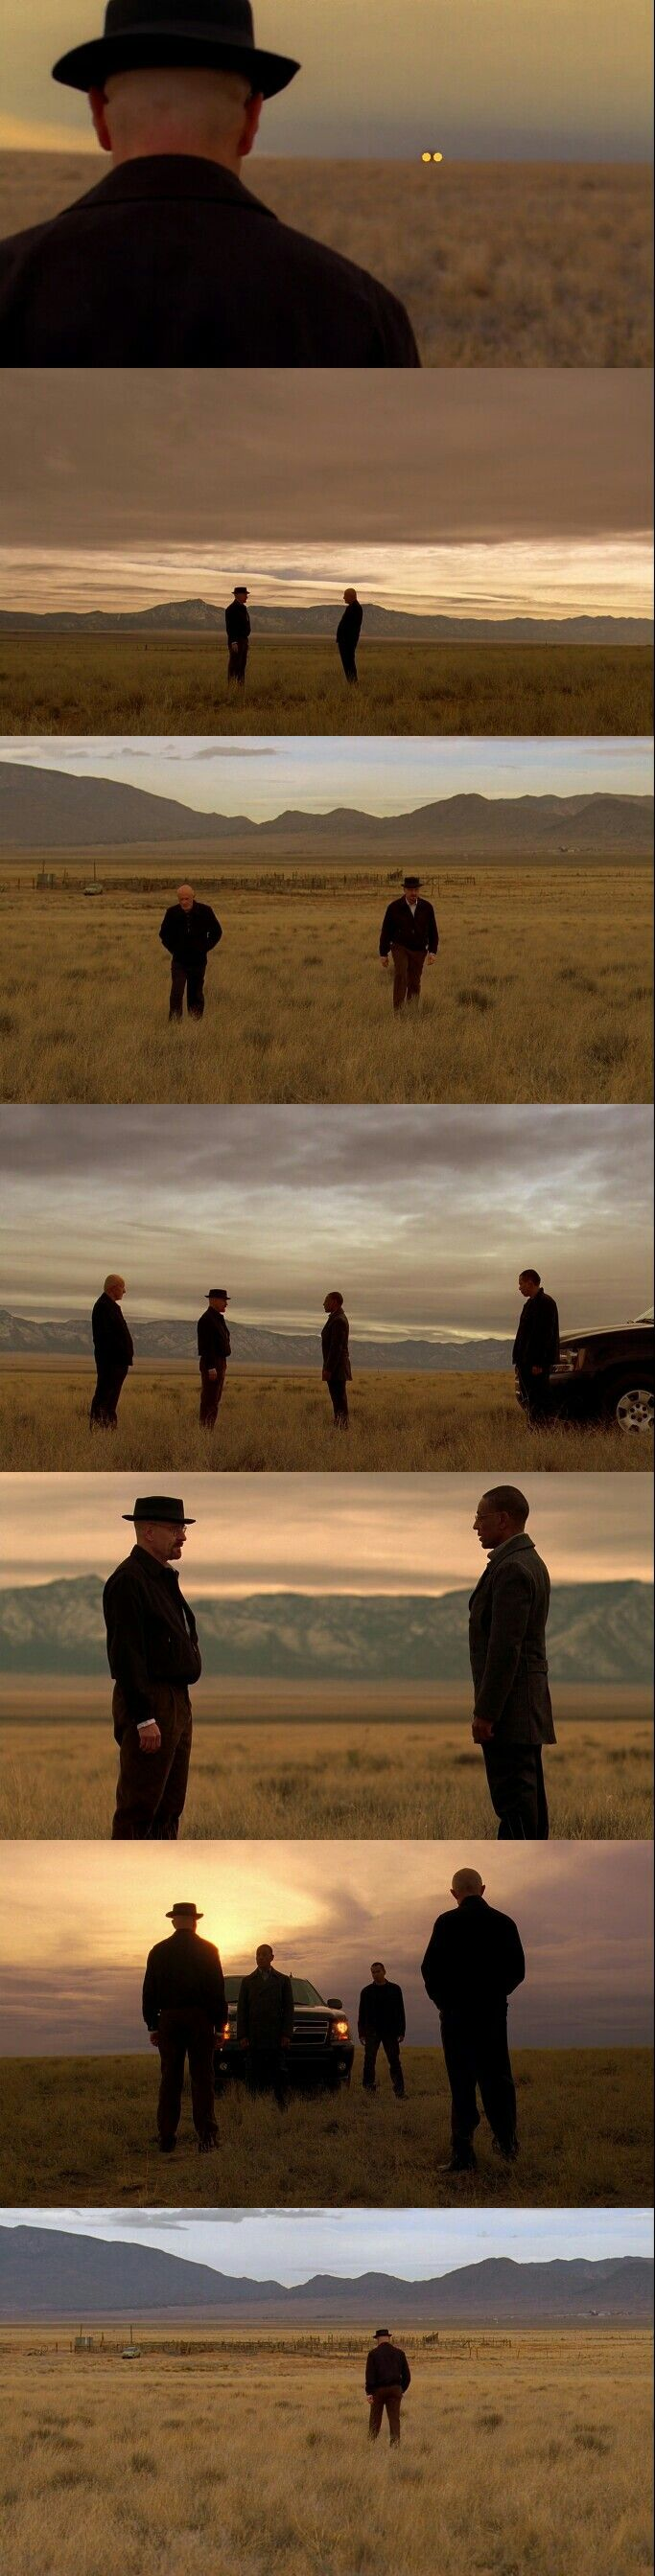 Breaking Bad Season 3 Episode 13 Opening Scene.